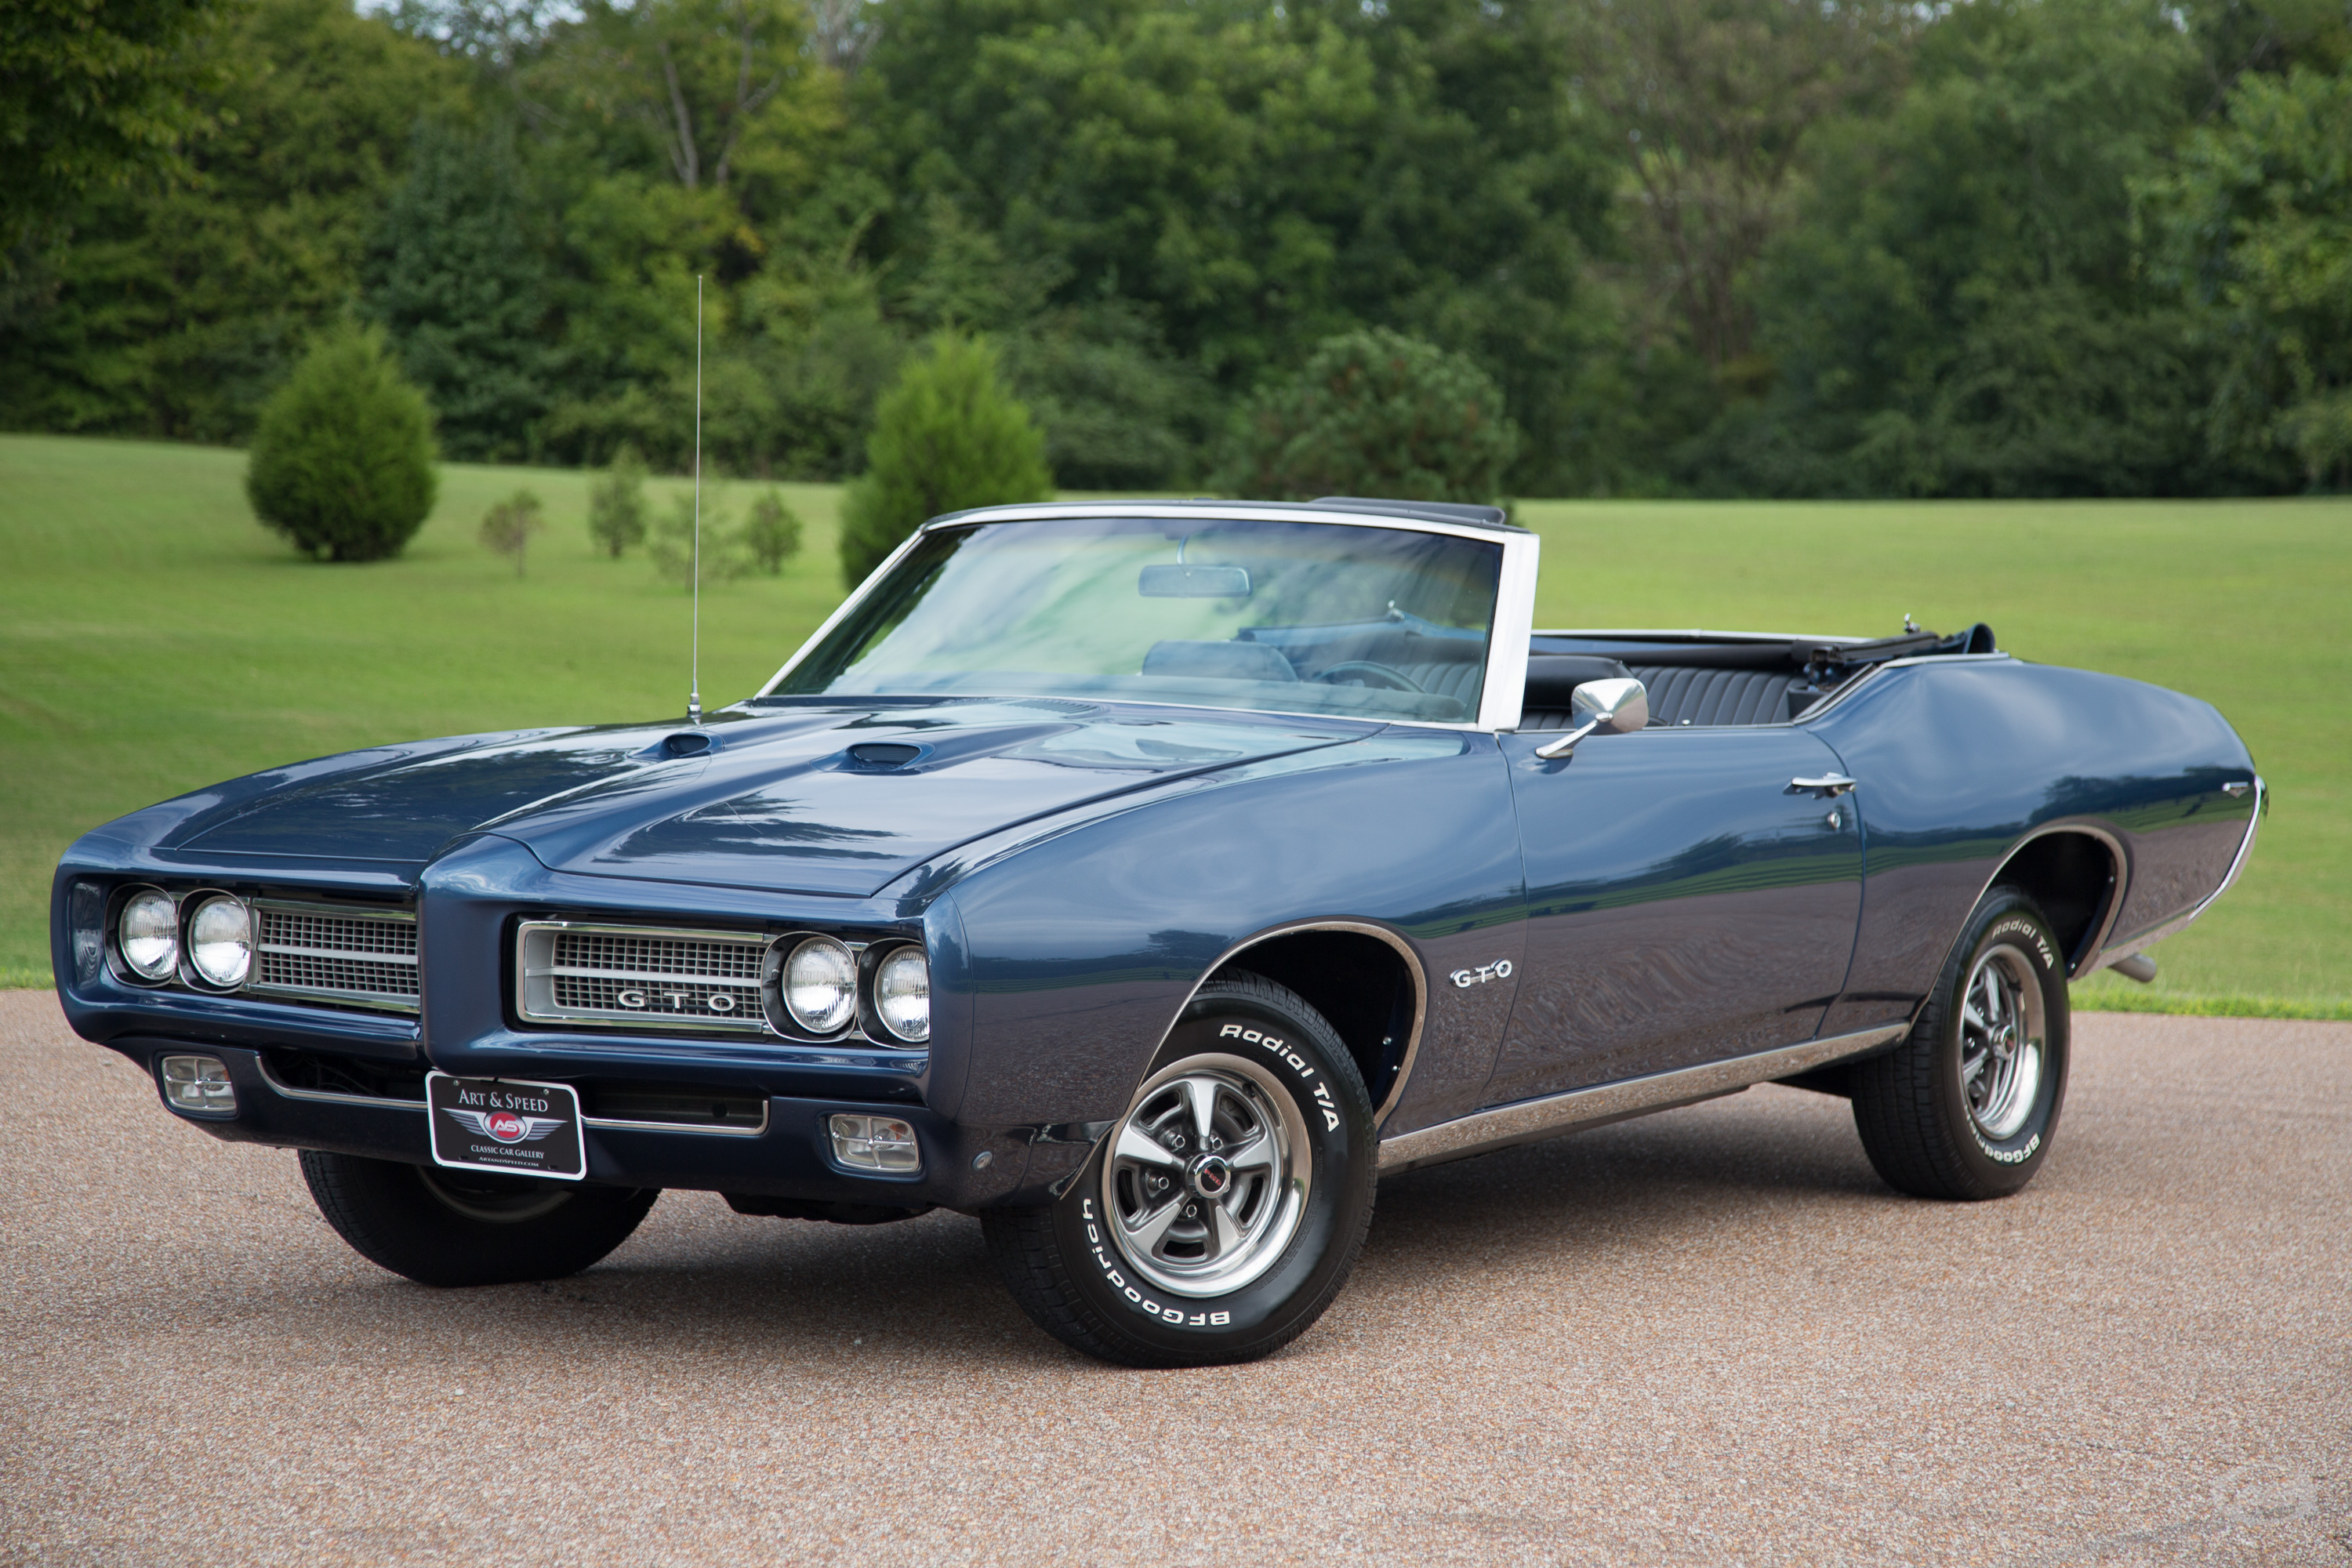 Rebuild Automatic Transmission >> 1969 Pontiac GTO | Art & Speed Classic Car Gallery in Memphis, TN